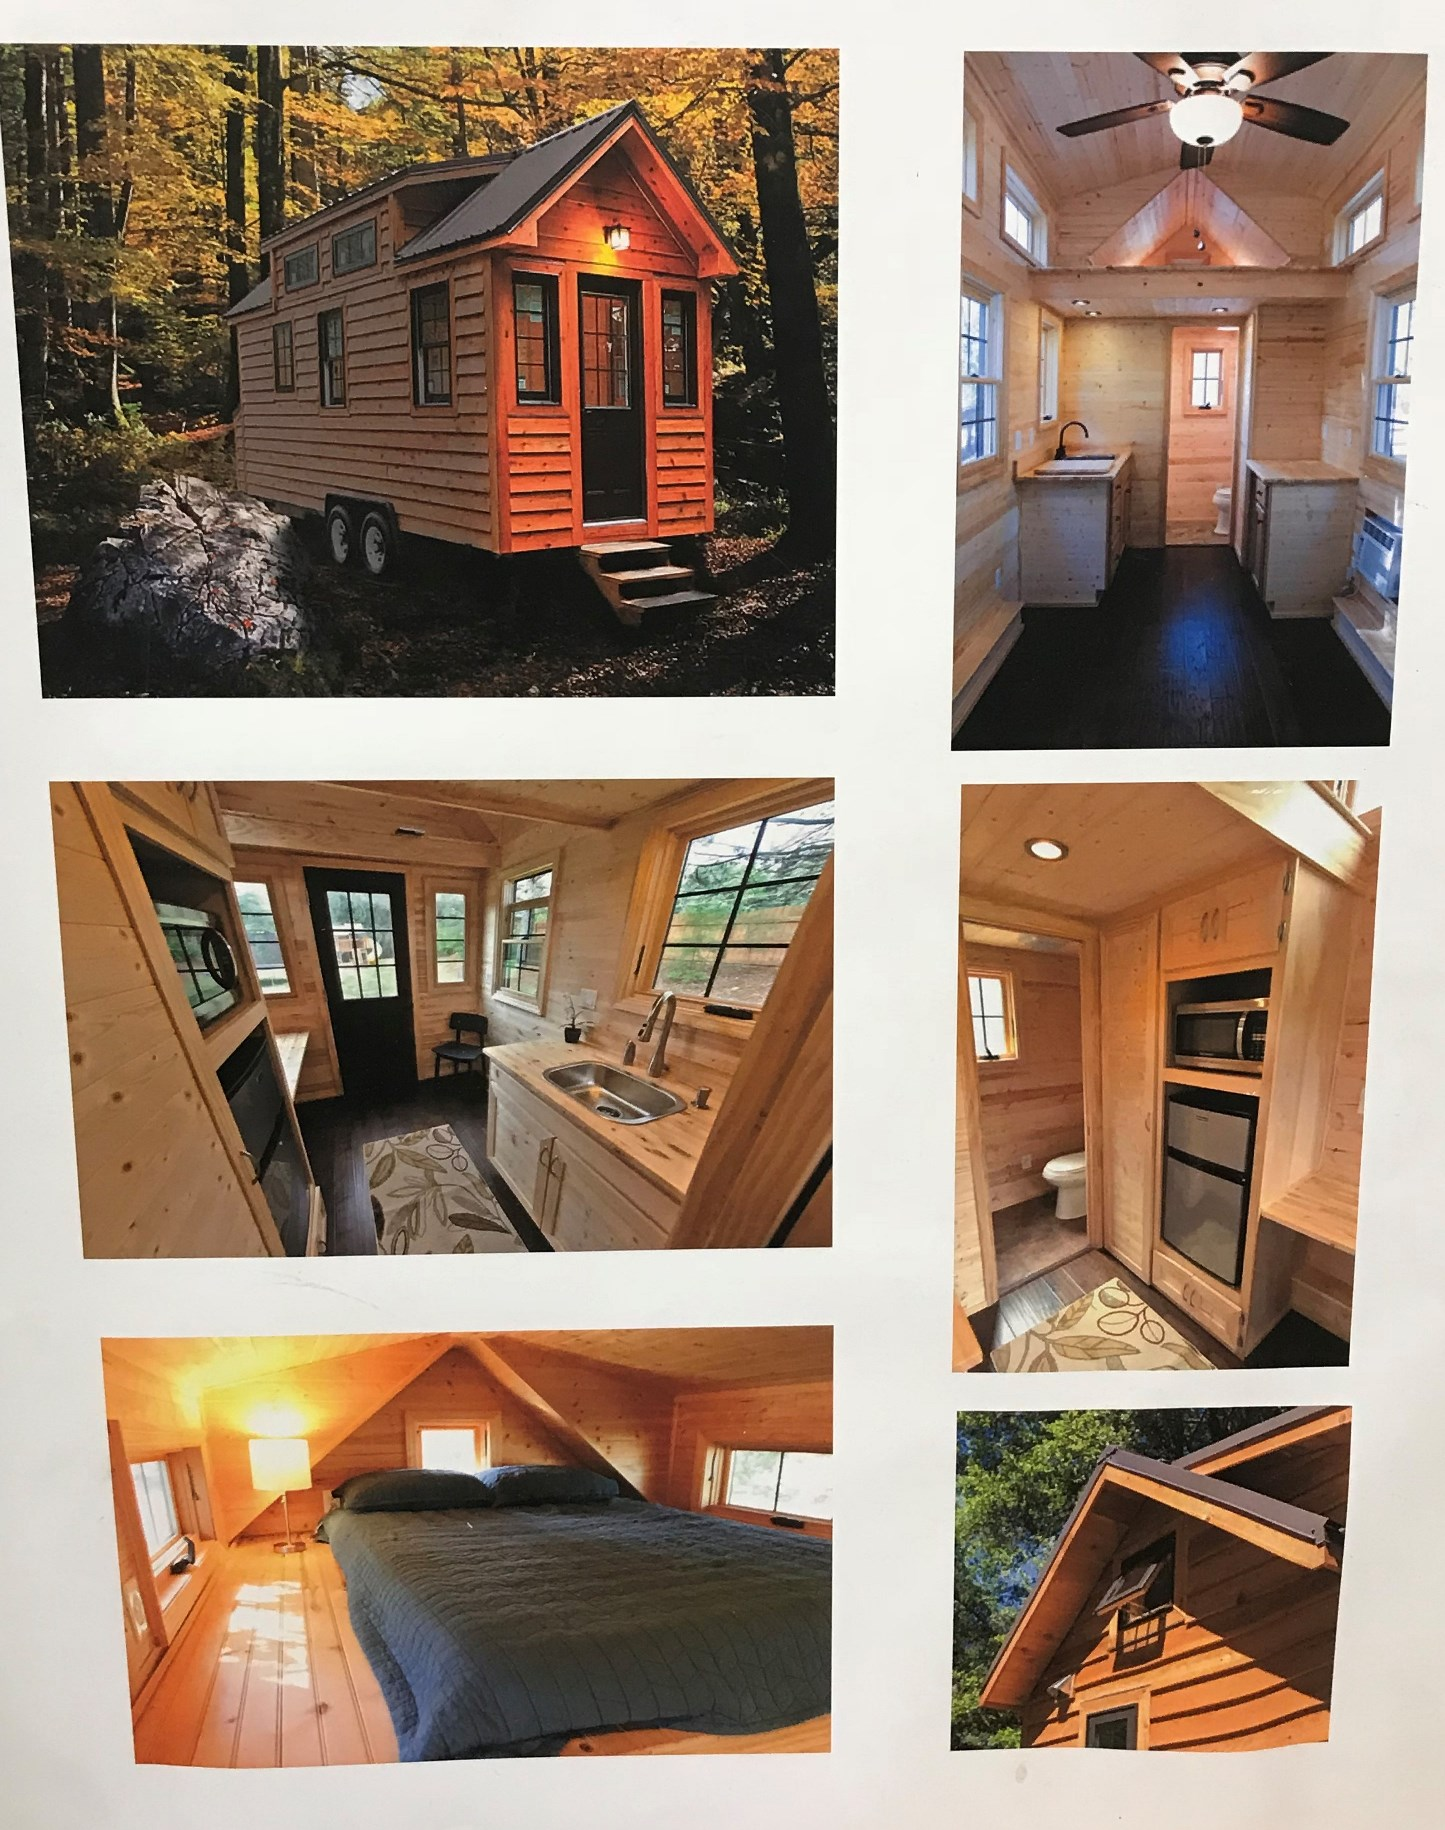 Tiny House - finished inside and out and delivered